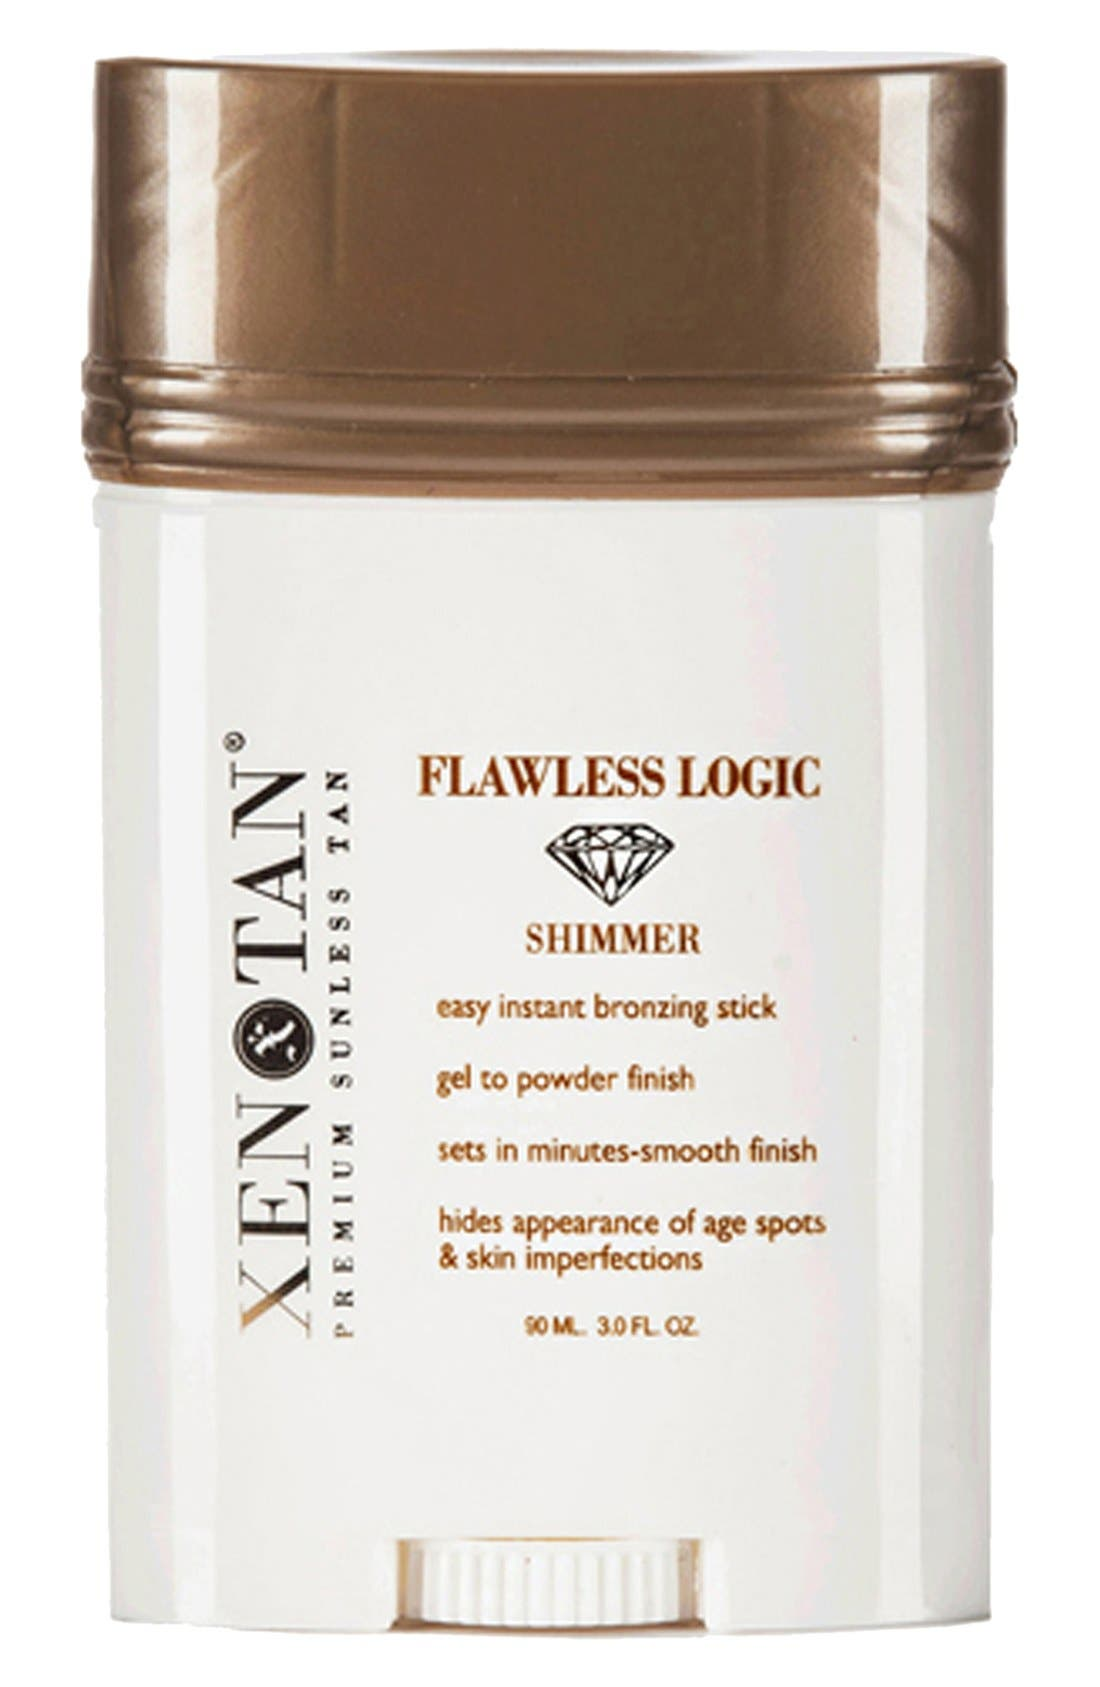 Xen-Tan® 'Flawless Logic' Bronzing Stick